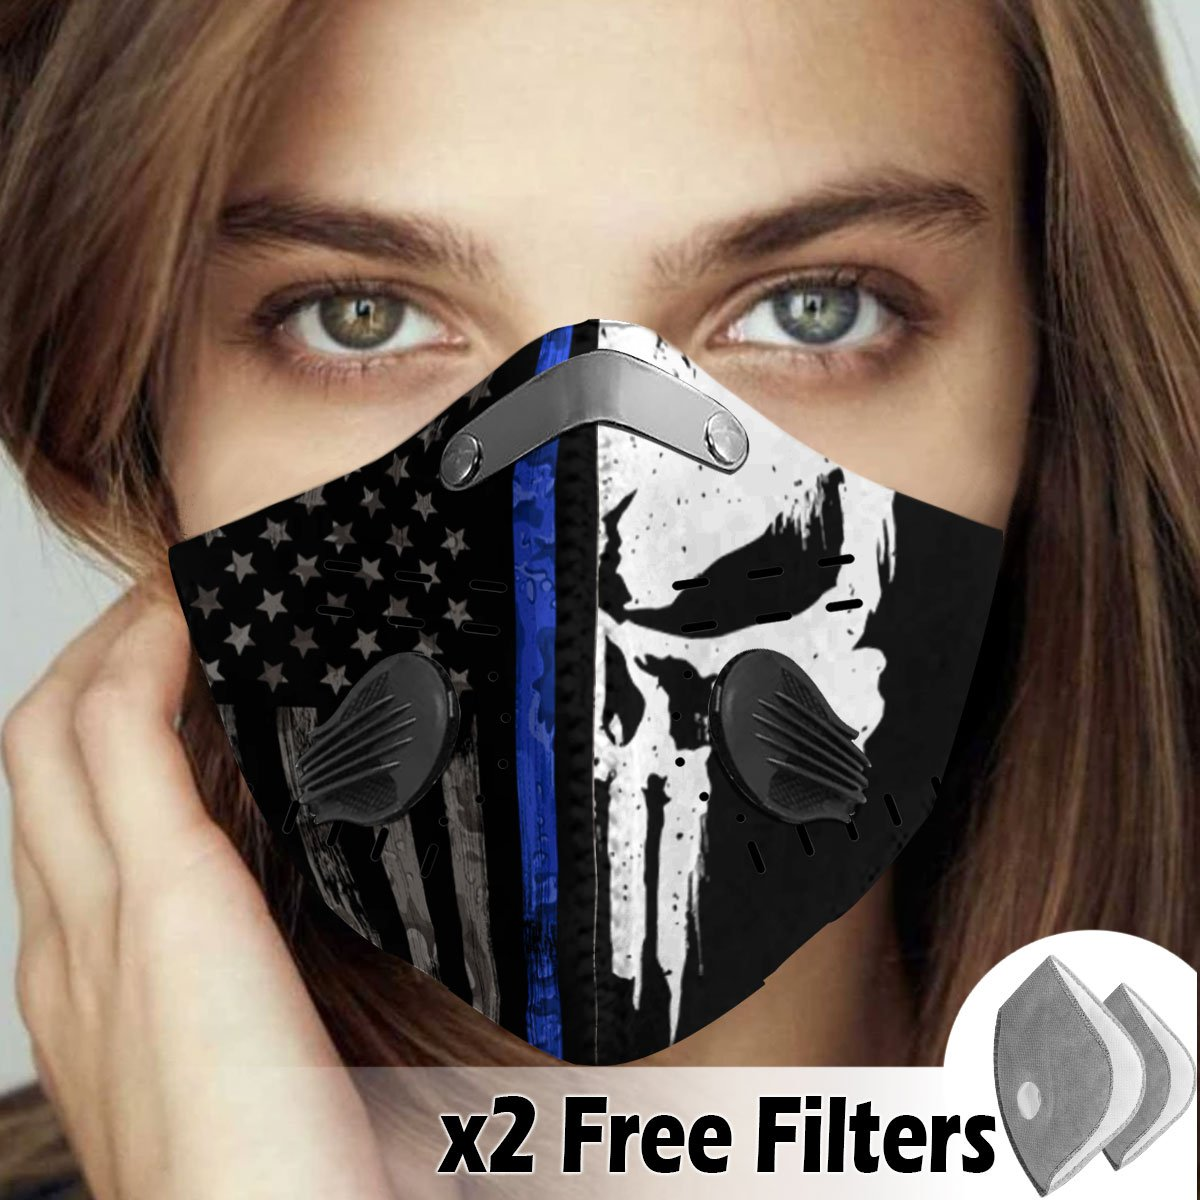 Activated Carbon Filter PM2.5 - American Flag Mask 08